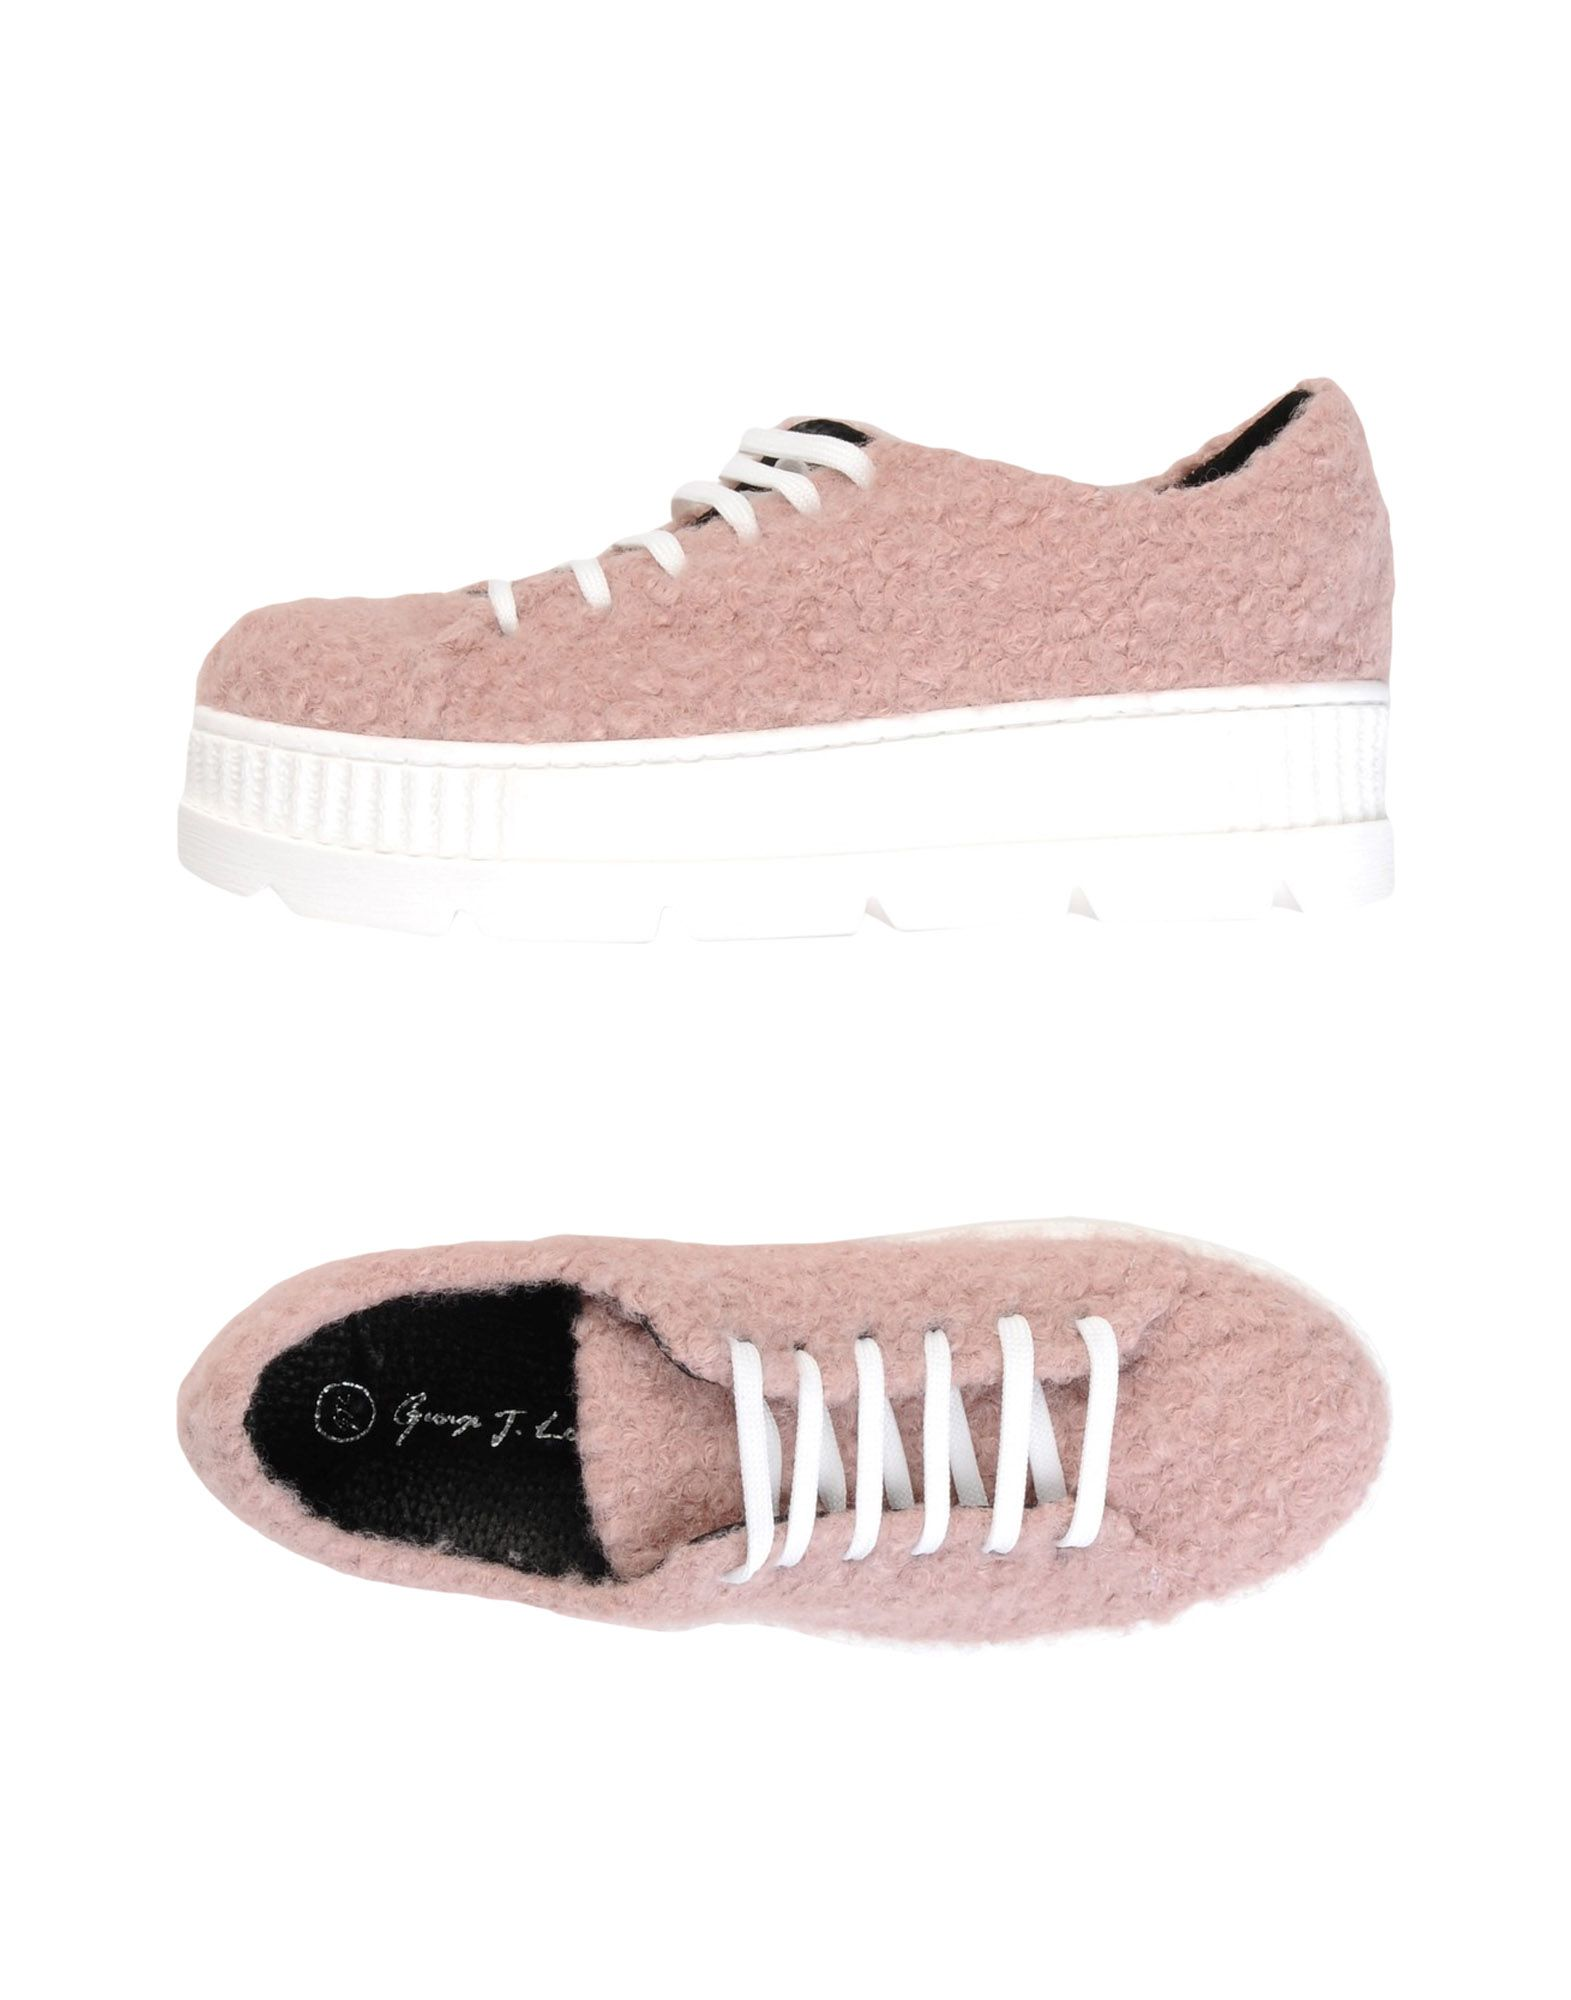 Sneakers George J. Love Donna 11537860CT - 11537860CT Donna 9f55fe